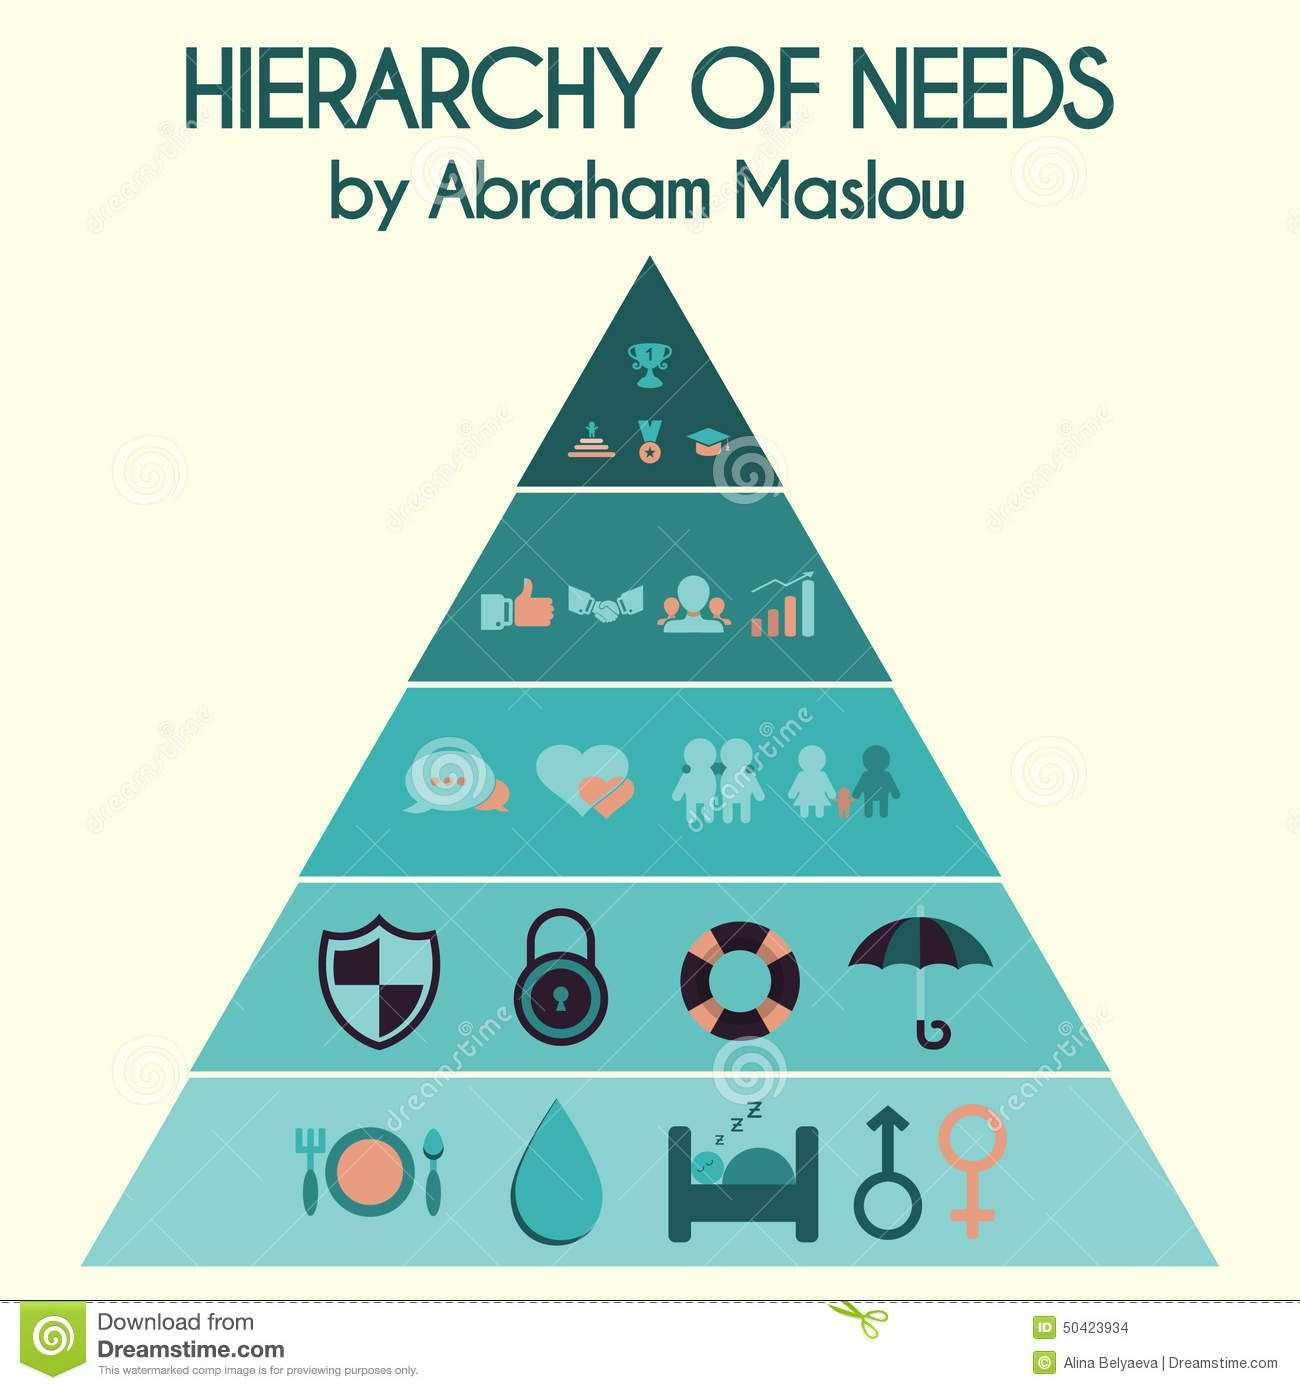 Maslow S Hierarchy Of Needs Infographic Google Search Maslow S Hierarchy Of Needs Abraham Maslow Hierarchy